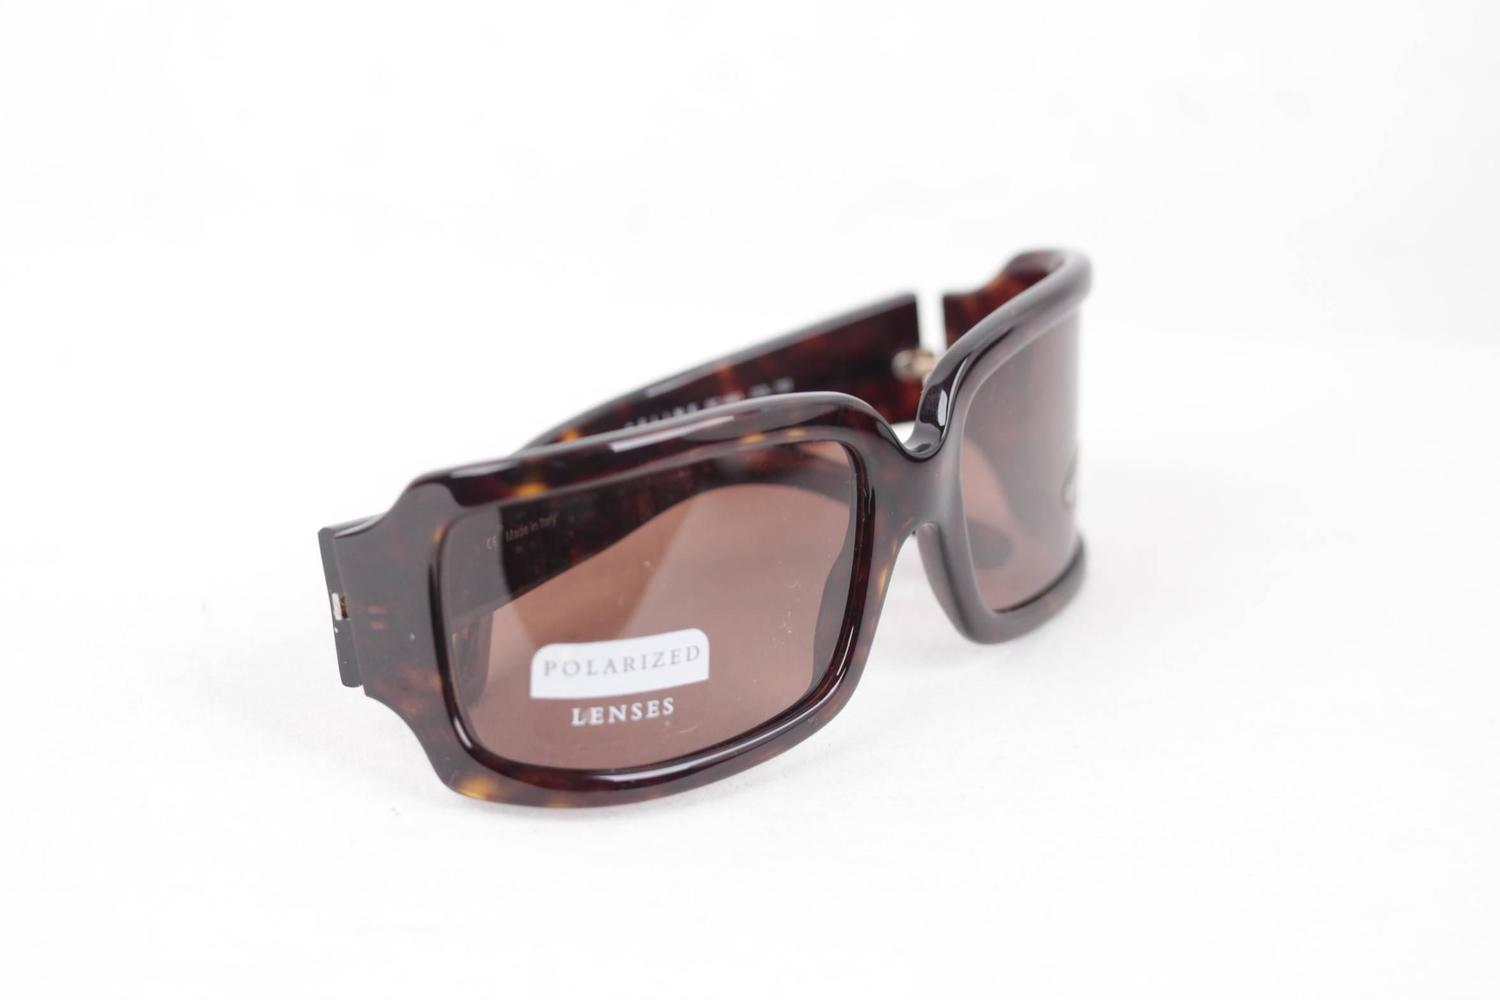 30ec247af6 CELINE PARIS brown tortoise SUNGLASSES SC 1561 col 722 EYEWEAR polarized  Lens at 1stdibs